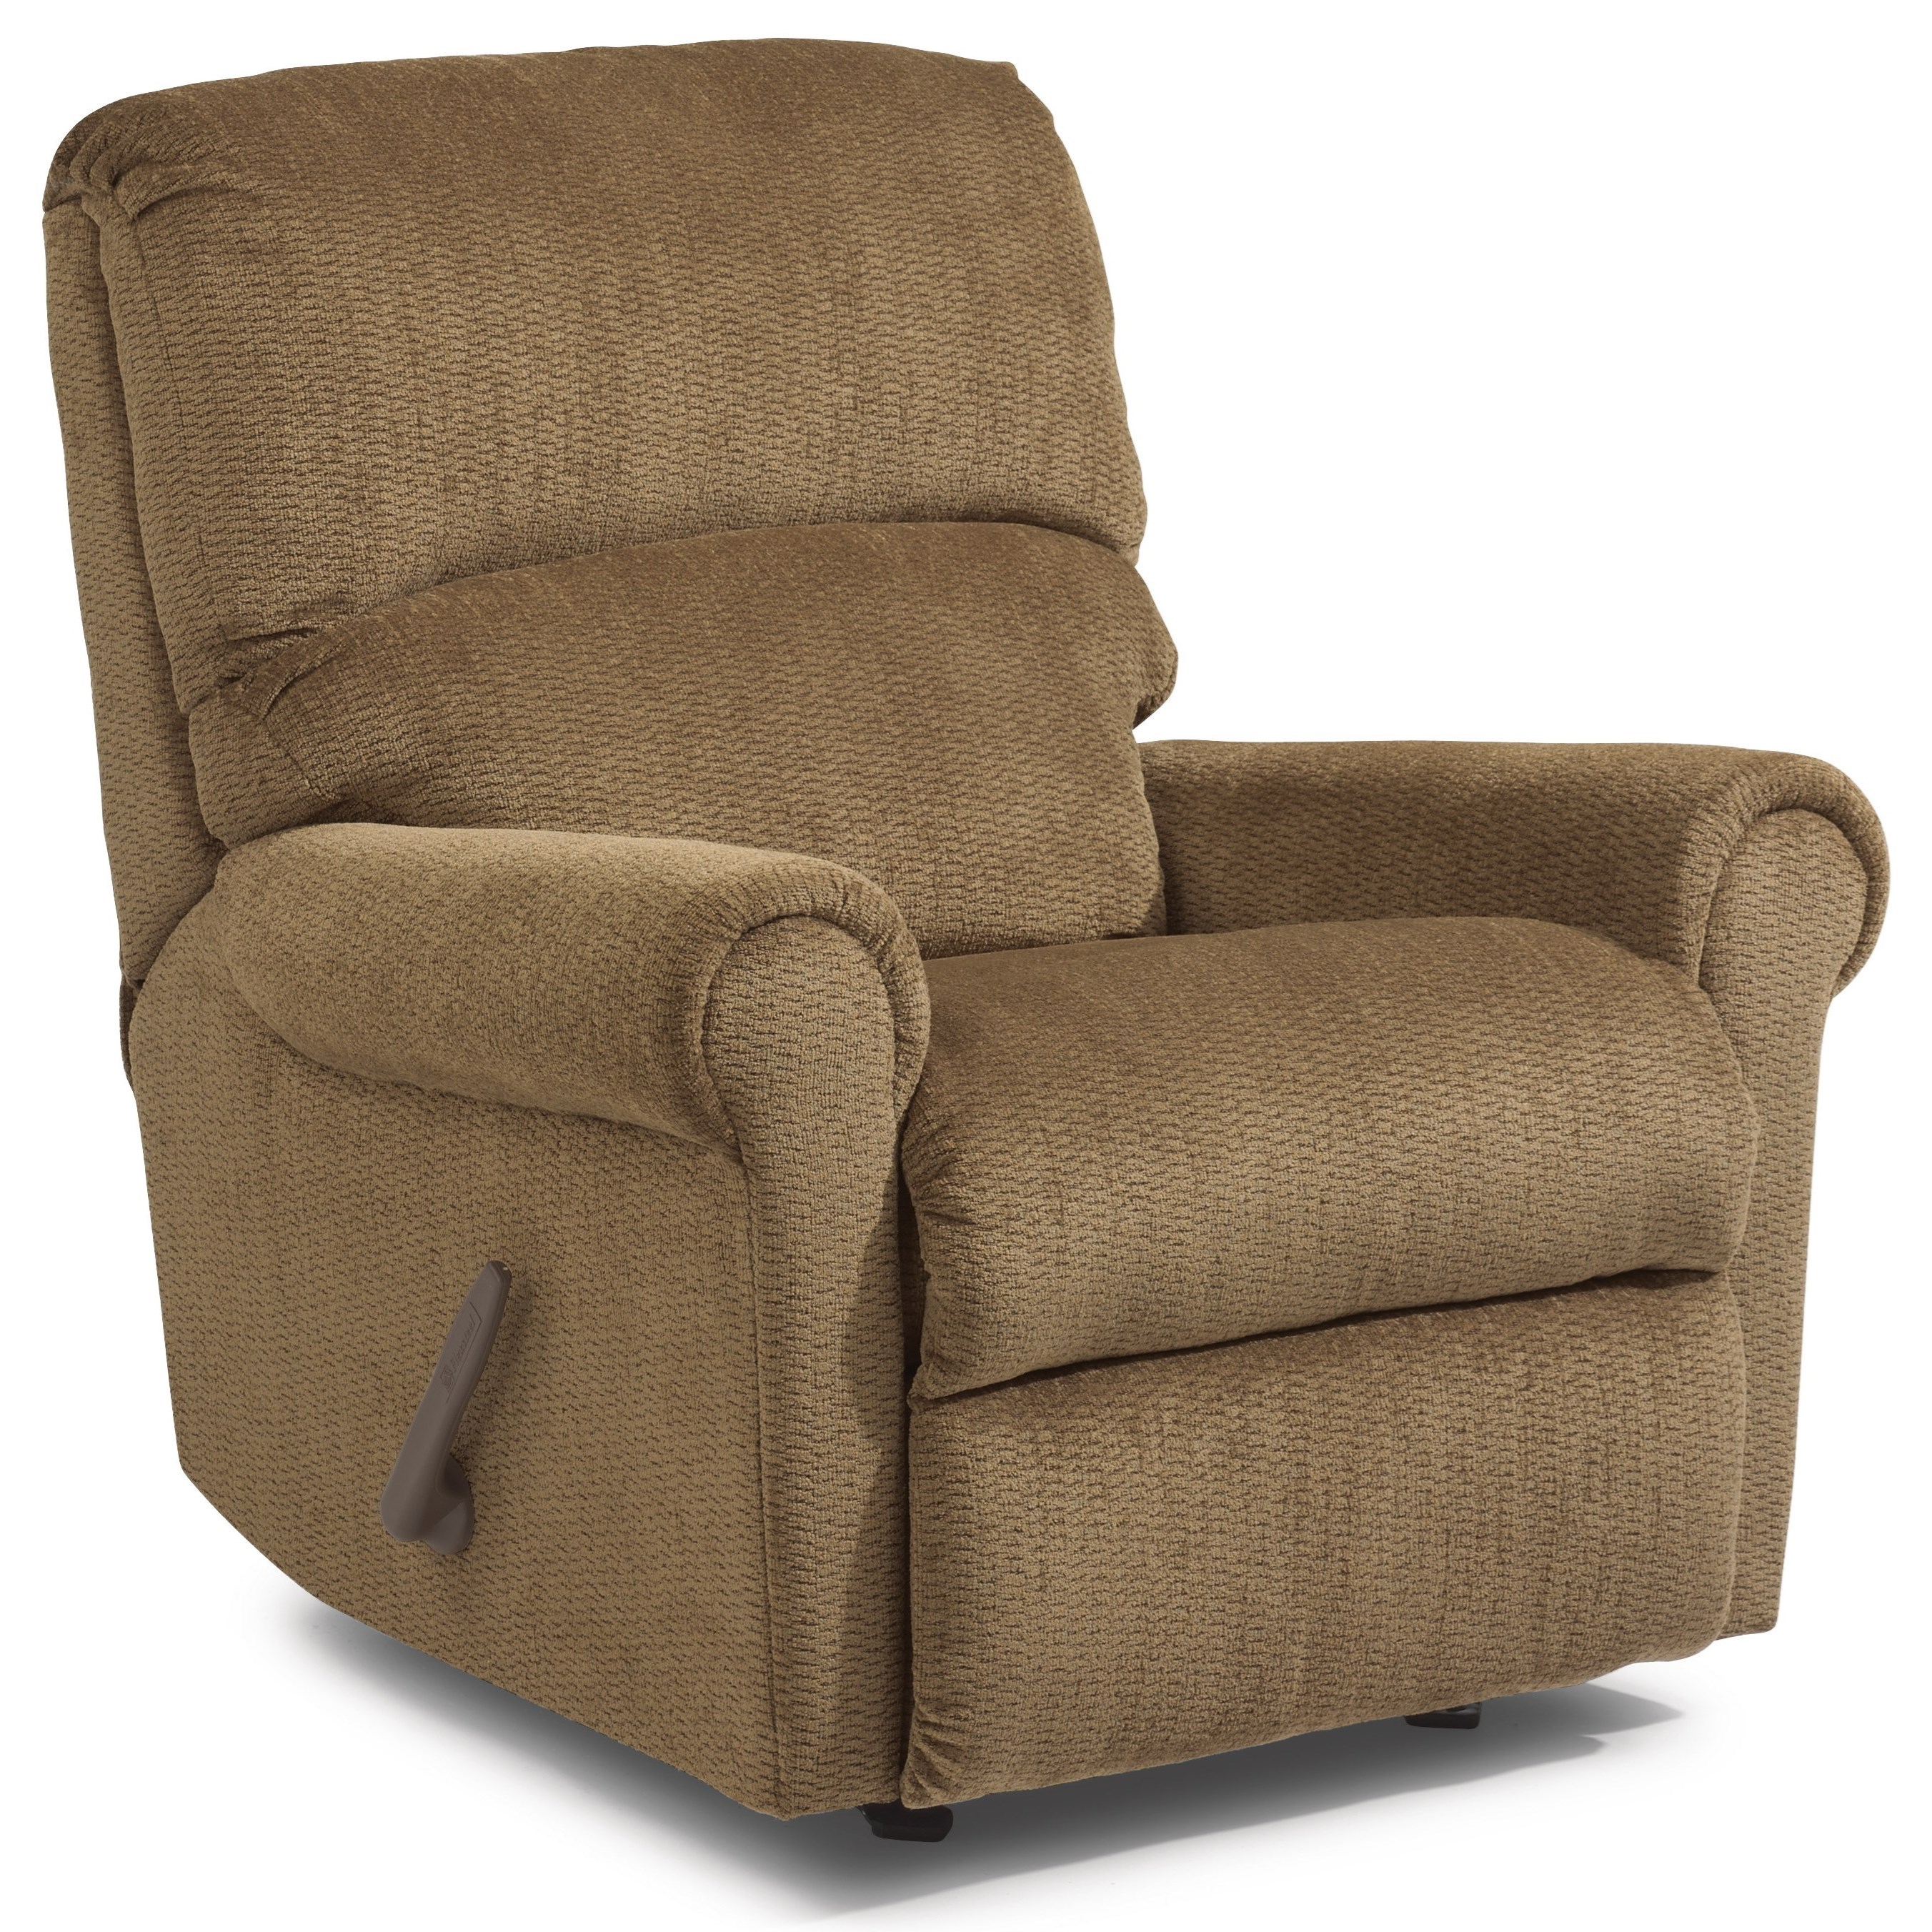 Furniture Markham Flexsteel Markham Rocker Recliner With Rolled Arms